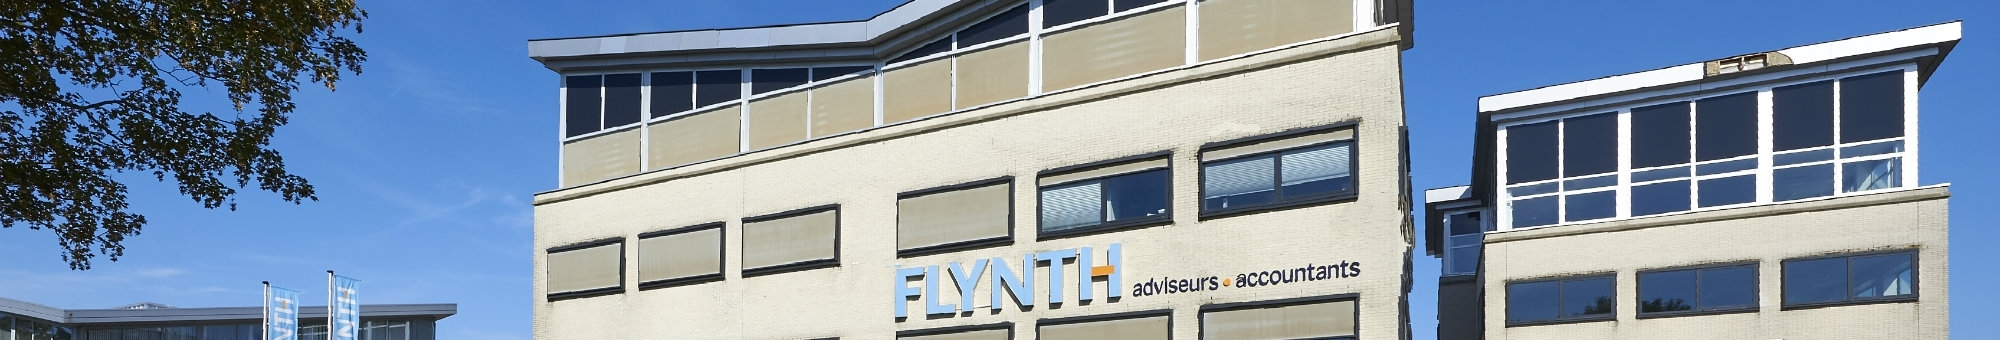 Flynth adviseurs en accountants in Boskoop